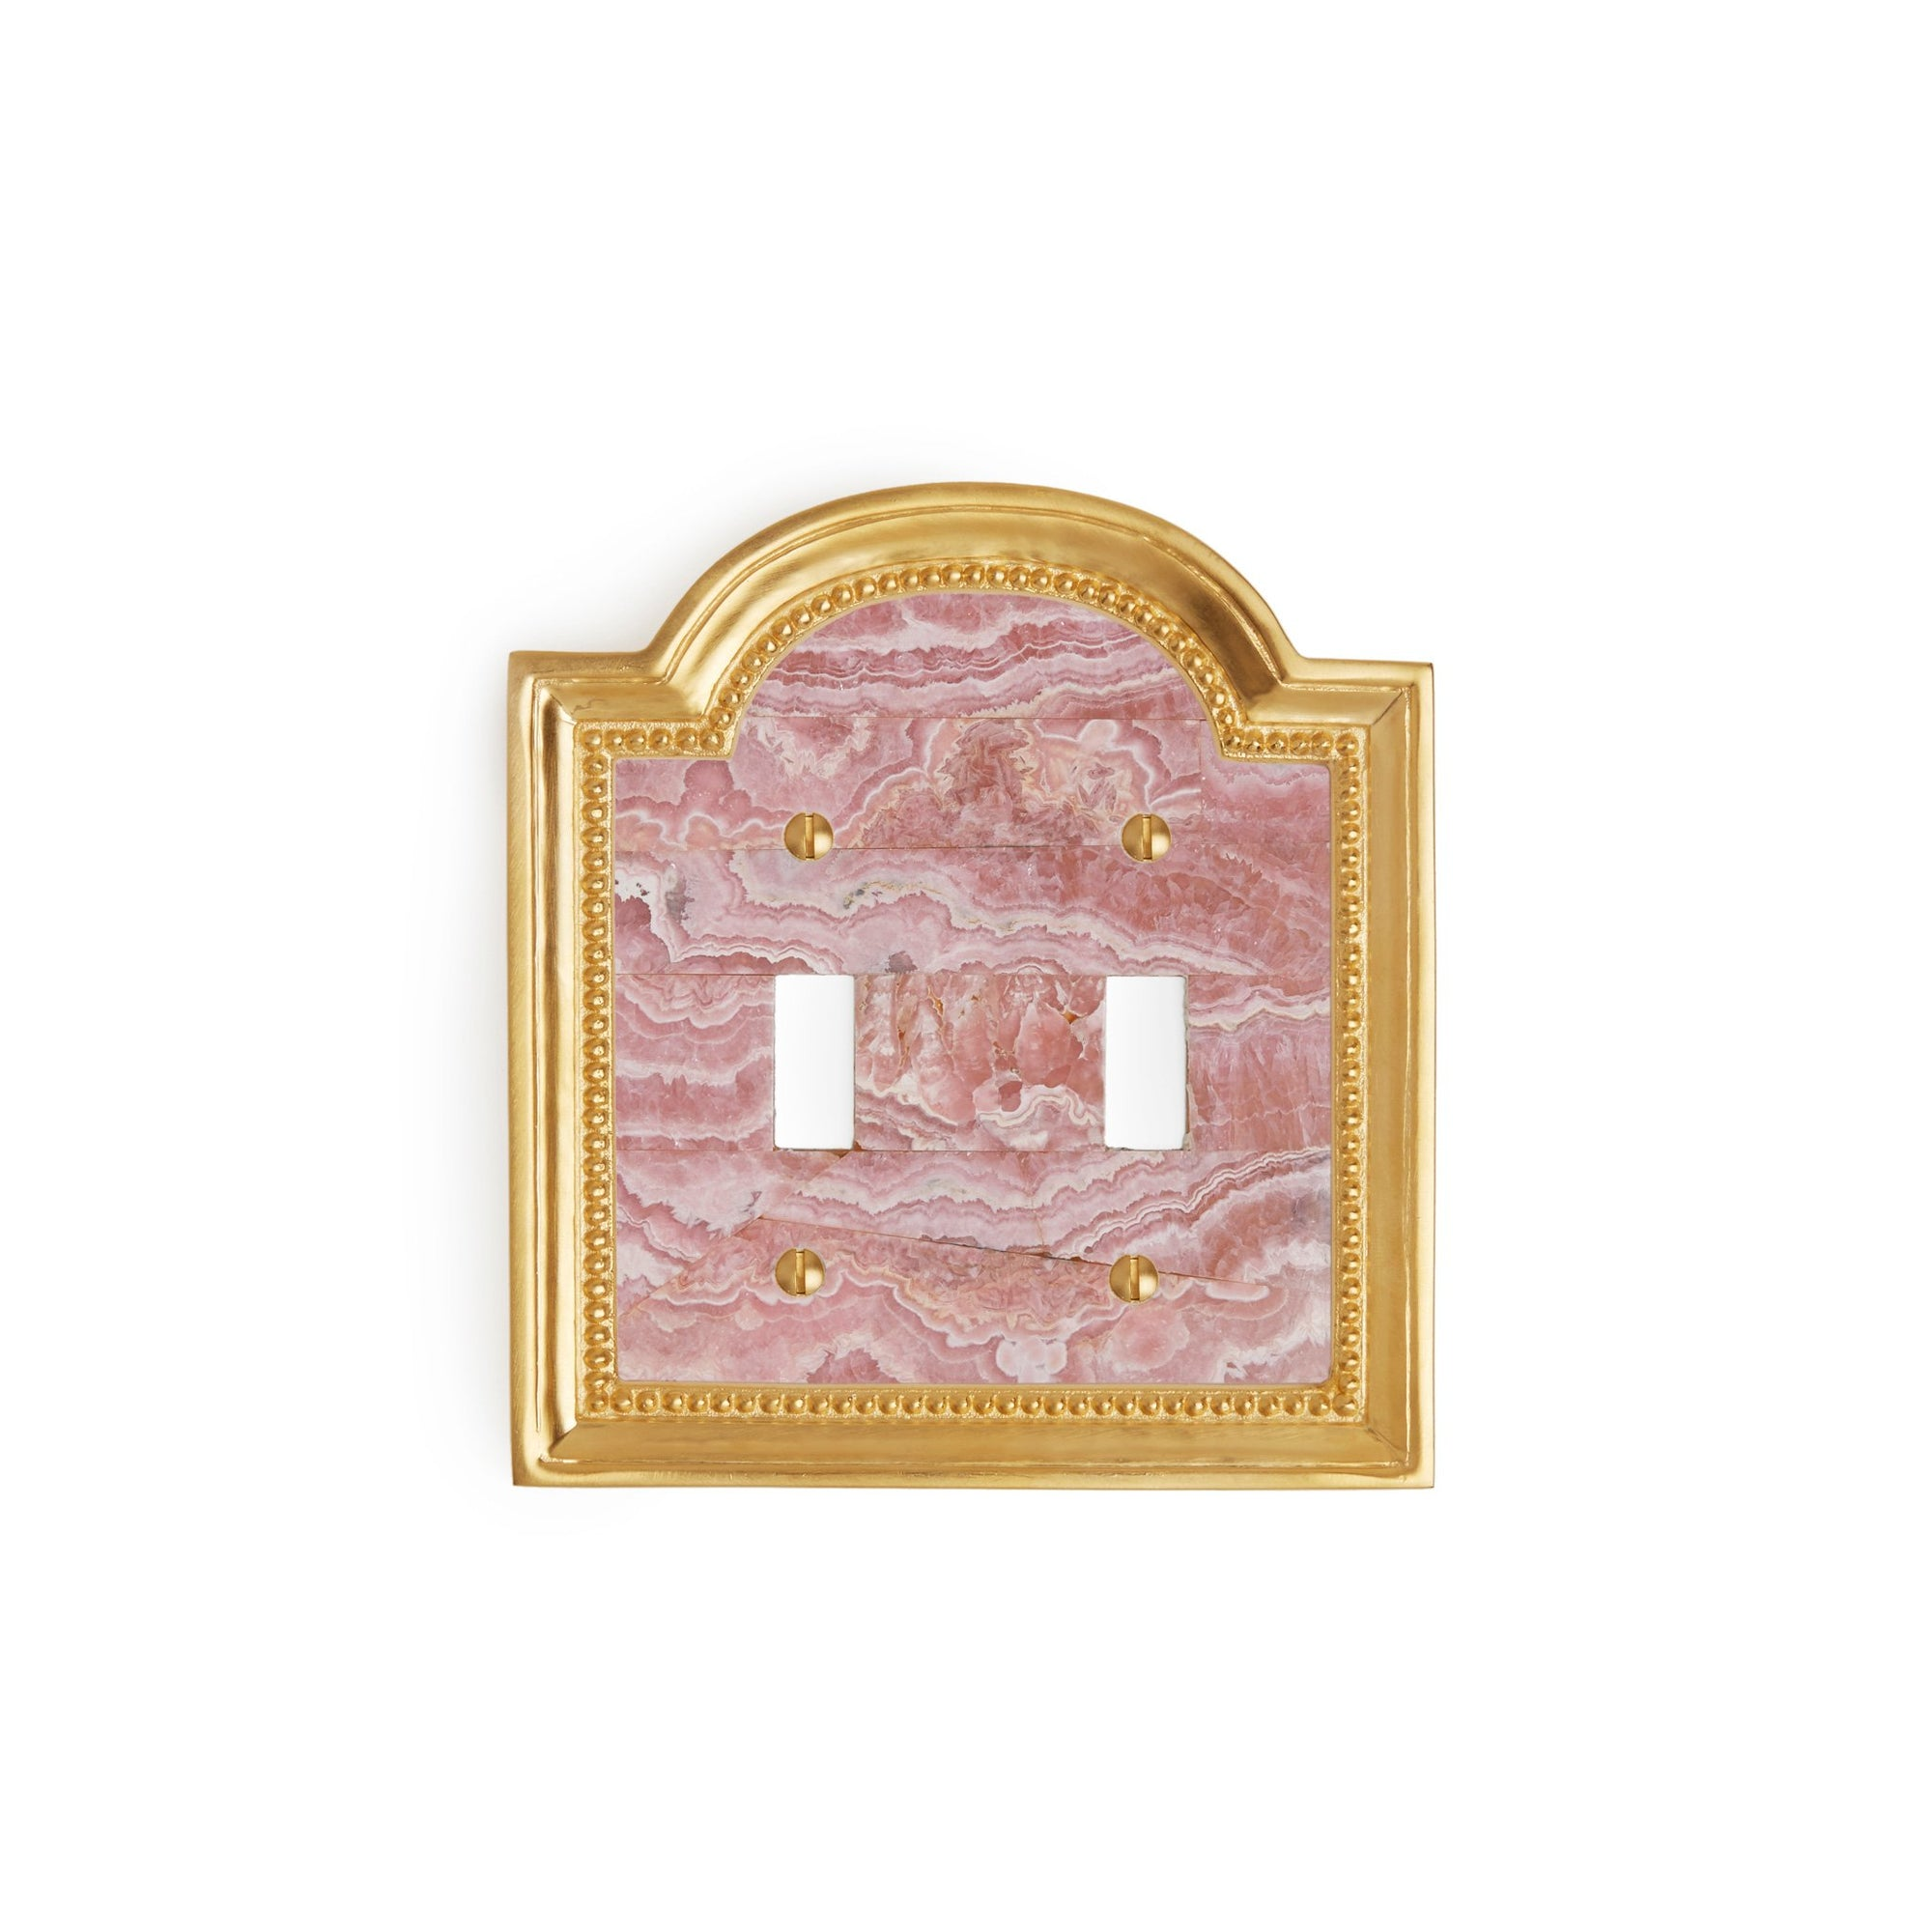 0470D-SWT-RHOD-GP Sherle Wagner International Rhodochrosite Semiprecious Classical Double Switch Plate in Gold Plate metal finish